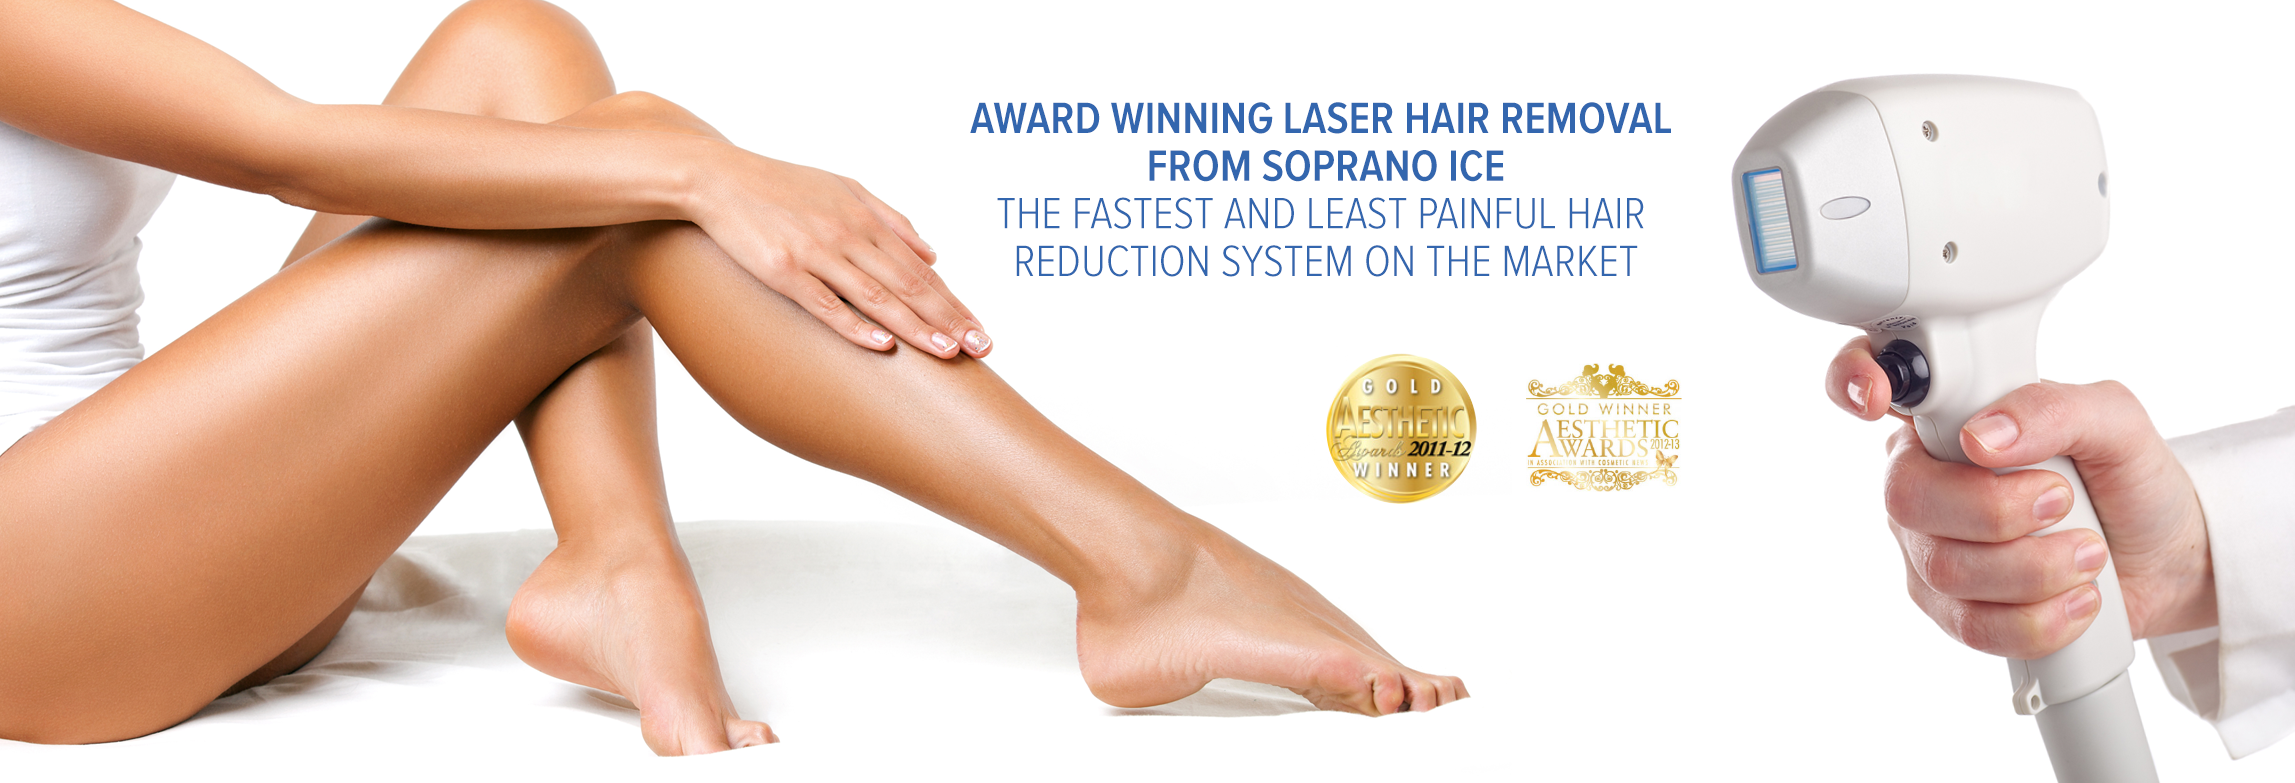 Soprano Ice Laser Hair Removal Soprano Ice Edinburgh